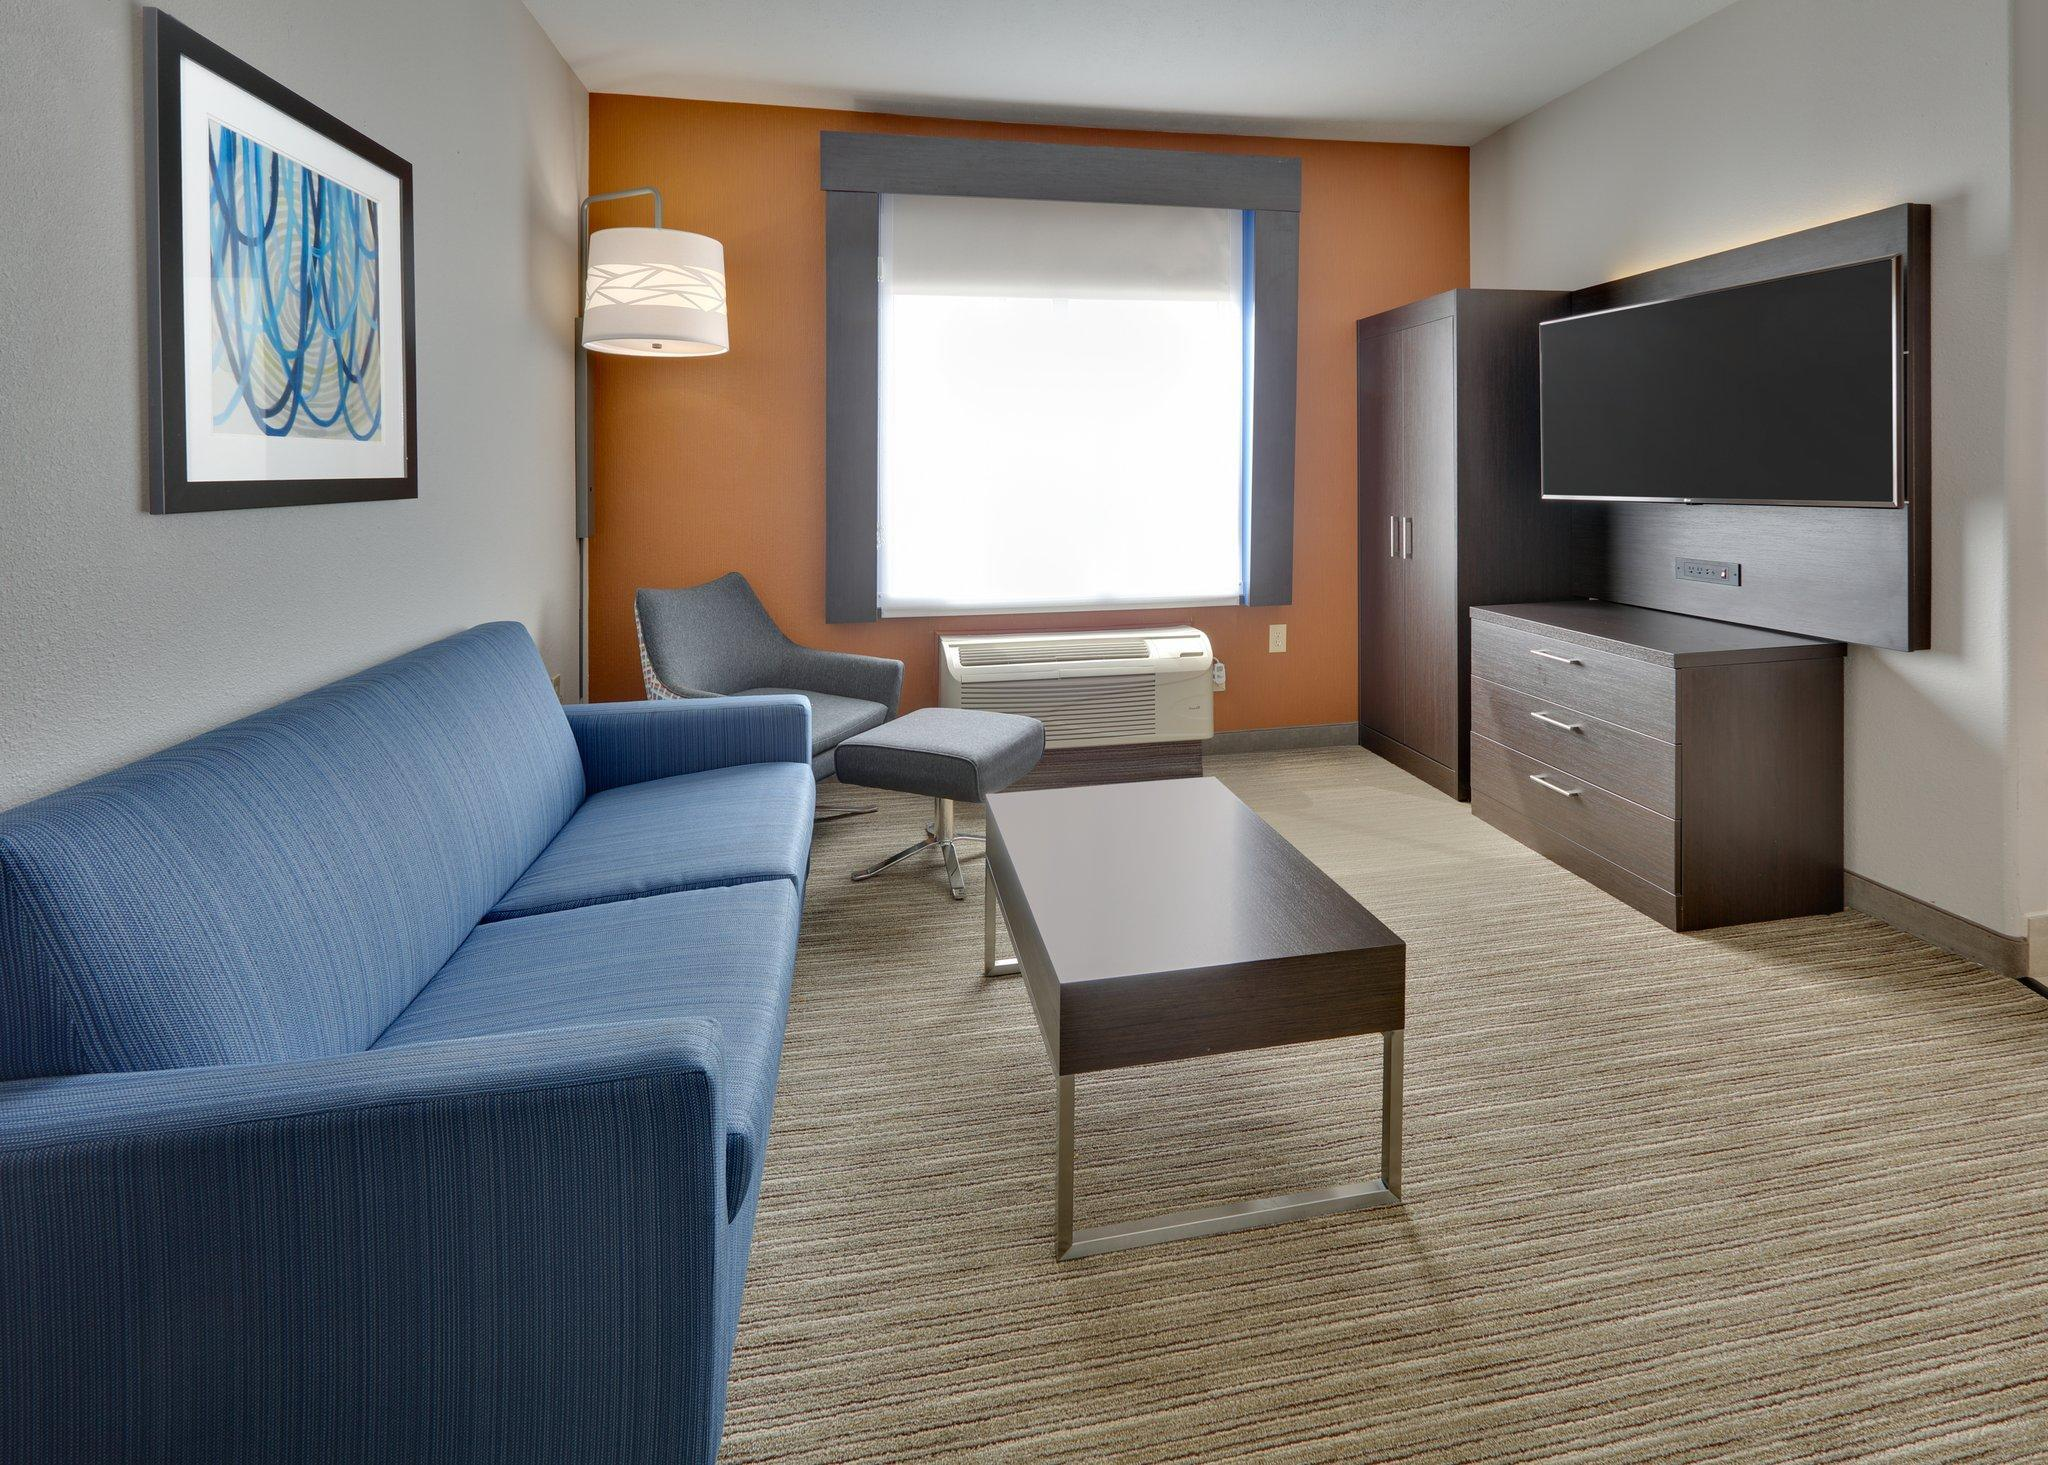 2 Room Suite W 1 King Bed Non-Smoking